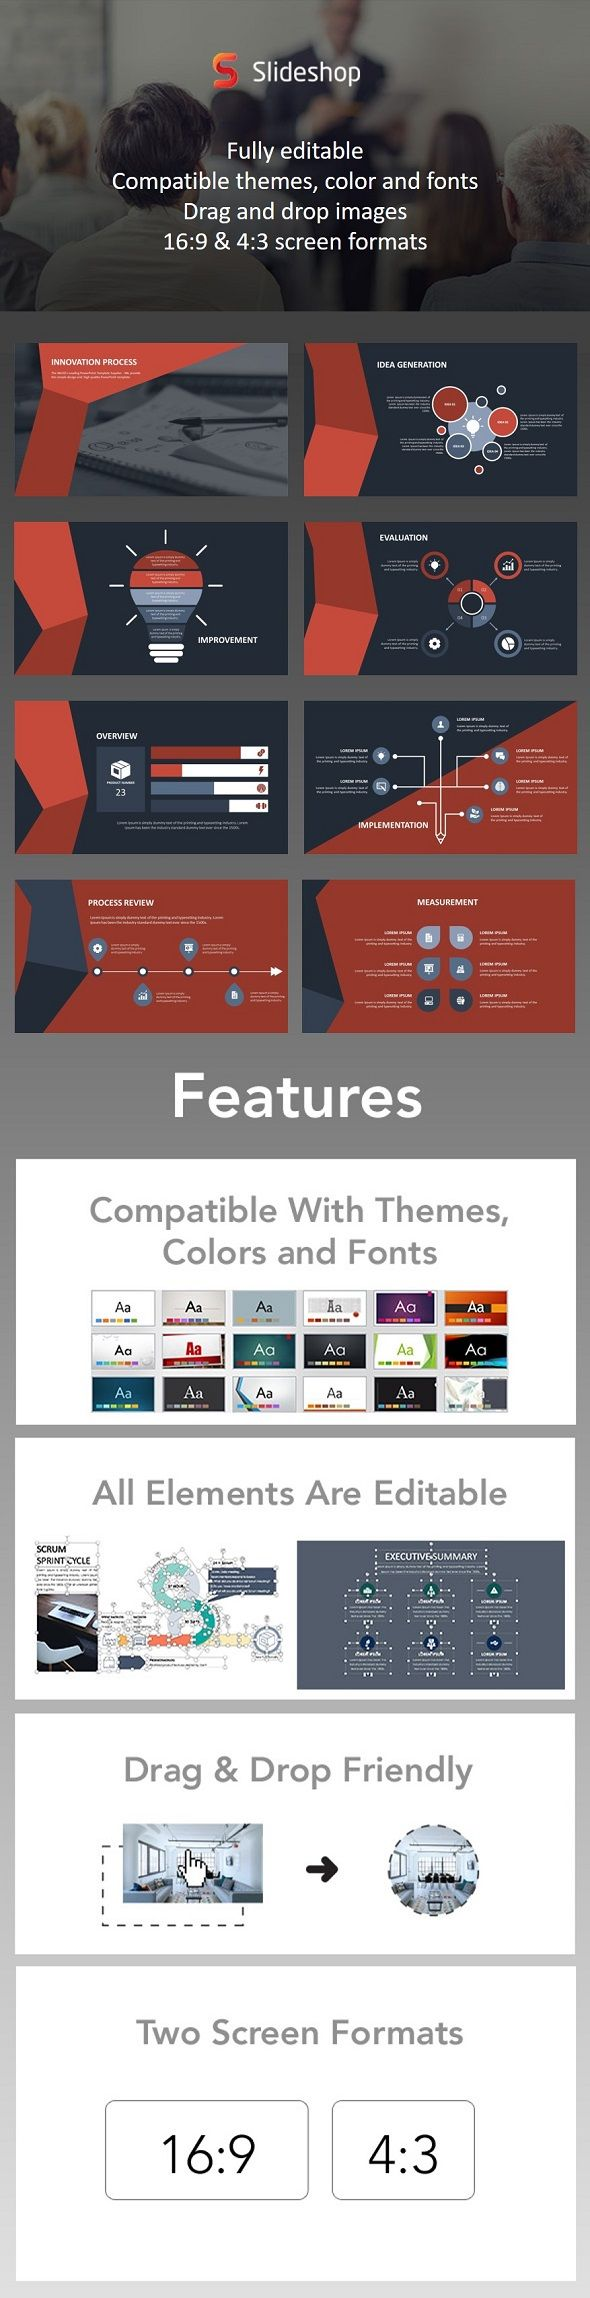 7 best free powerpoint templates on behance images on pinterest innovation process animation red alramifo Gallery